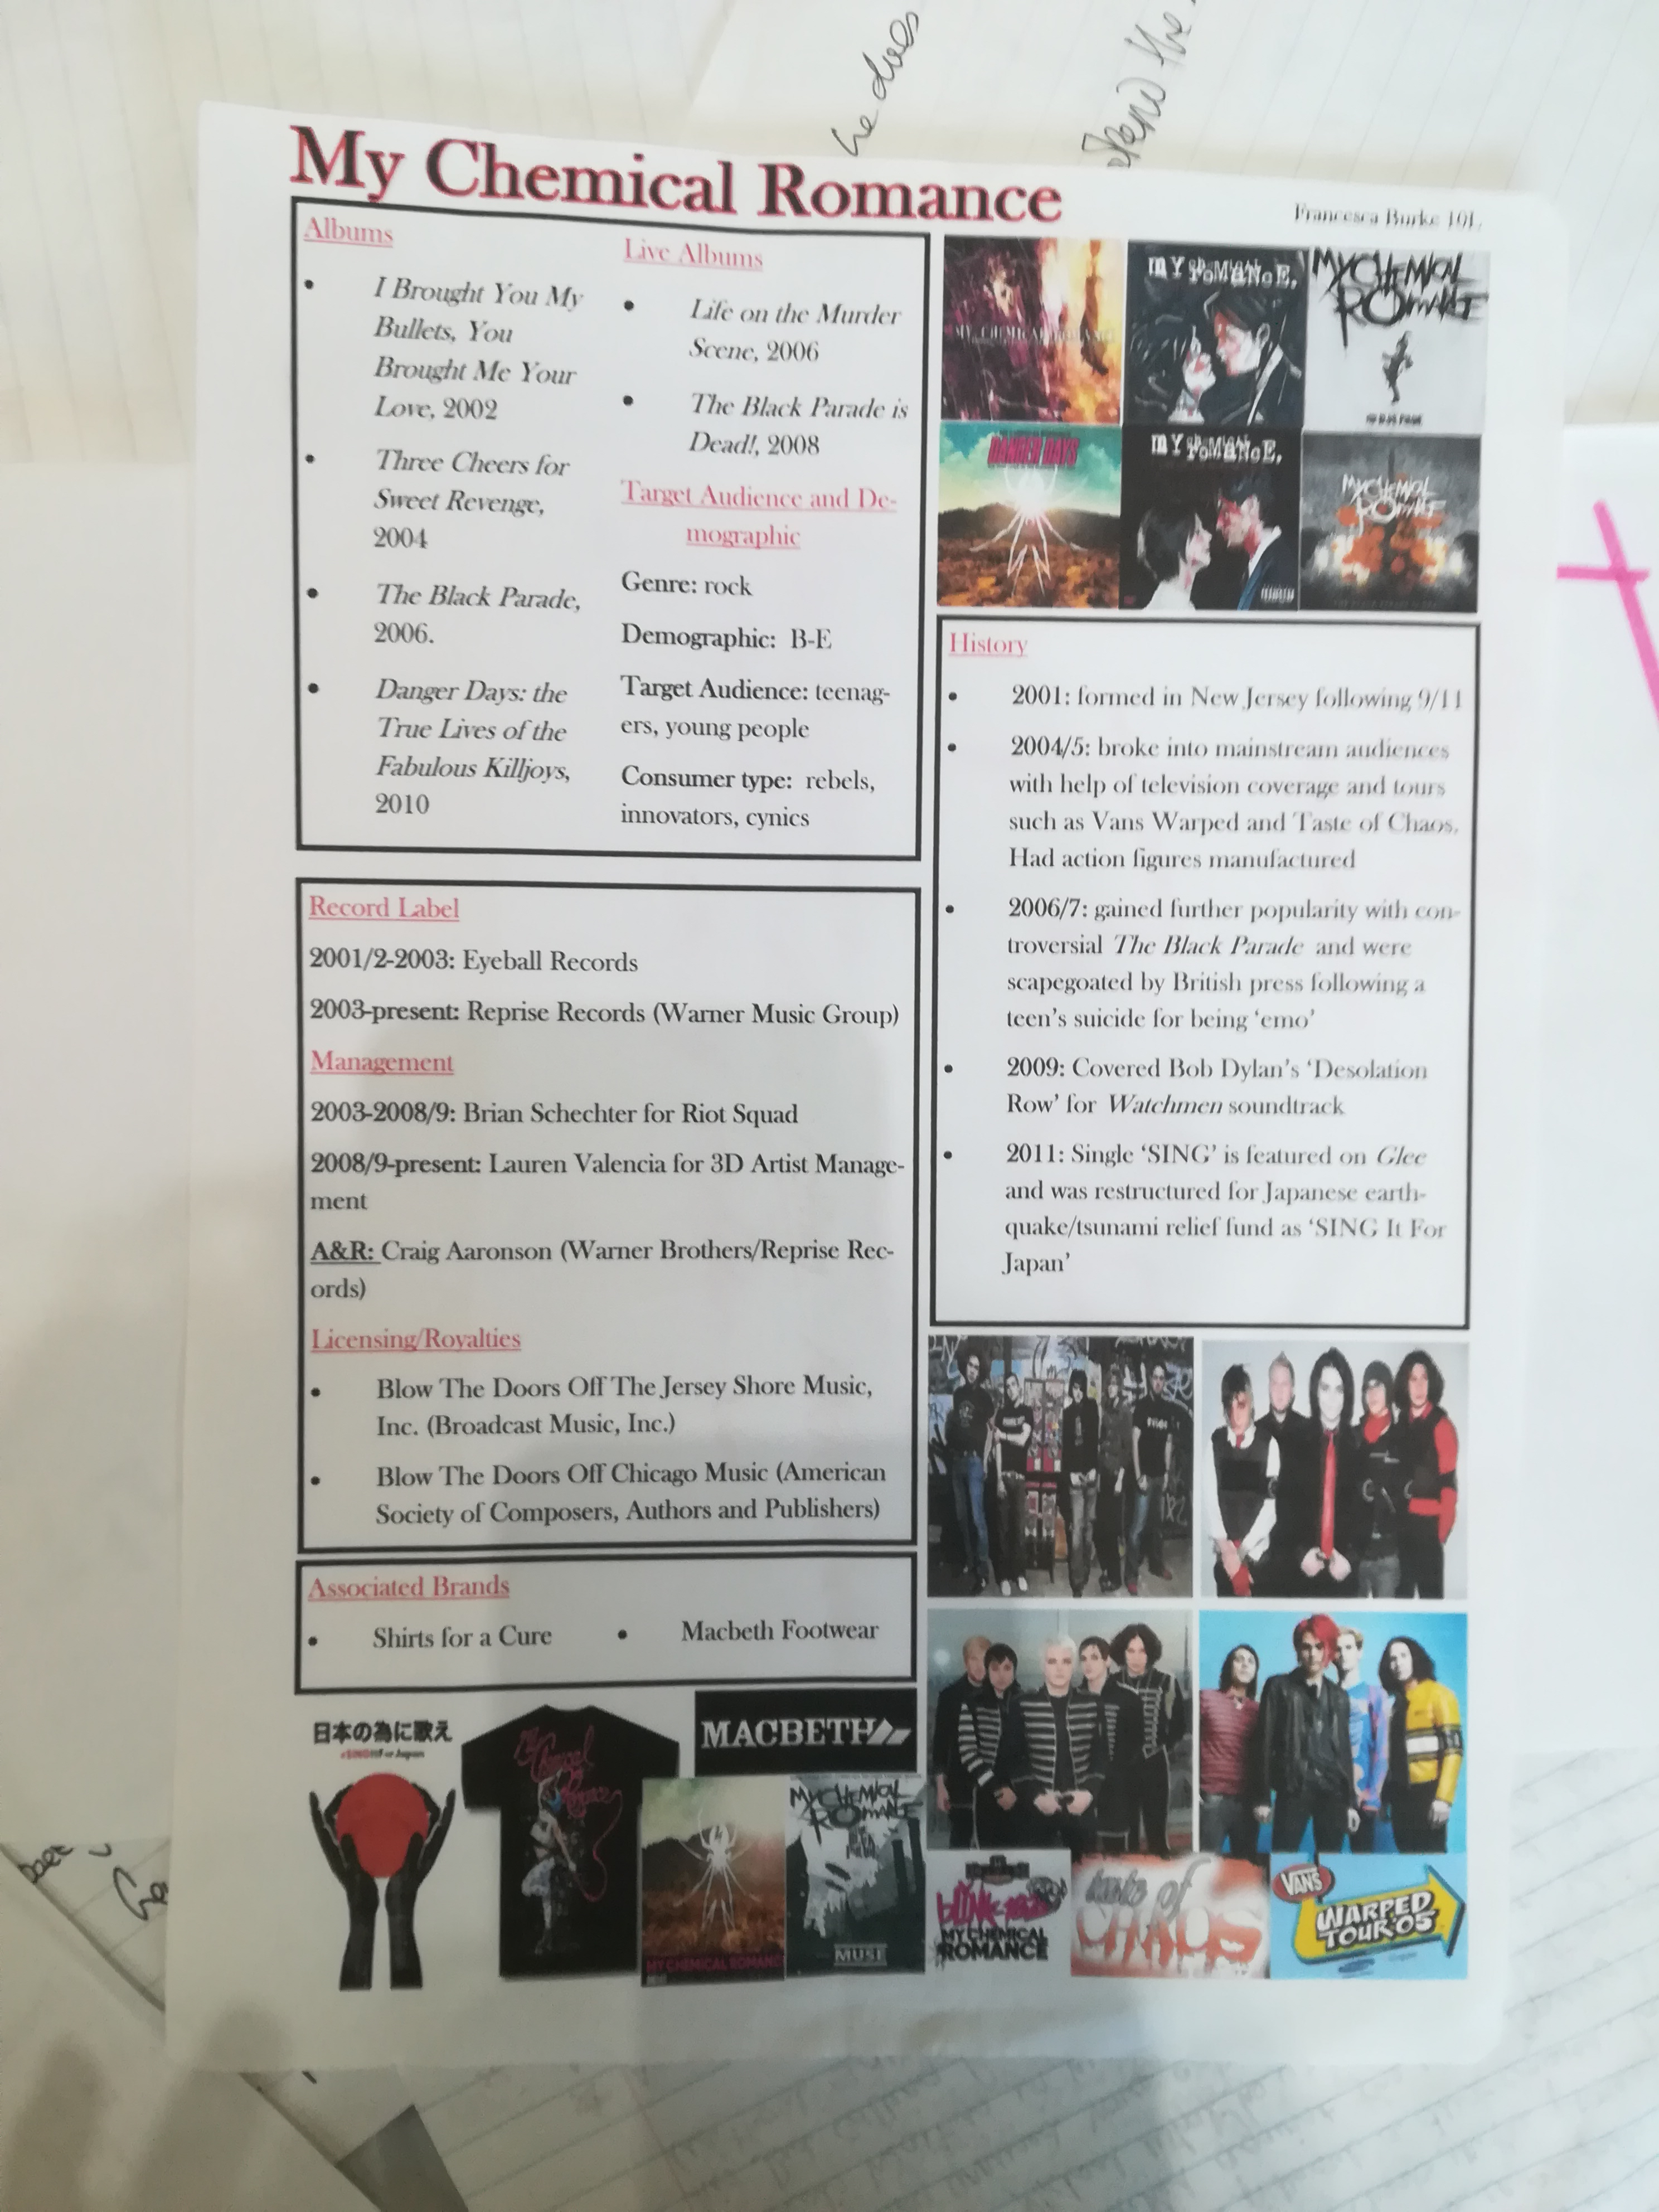 Photographs of My Chemical Romance members, merchandise and their album covers, and a list of their bibliography, labels, A&R and history up to 2011